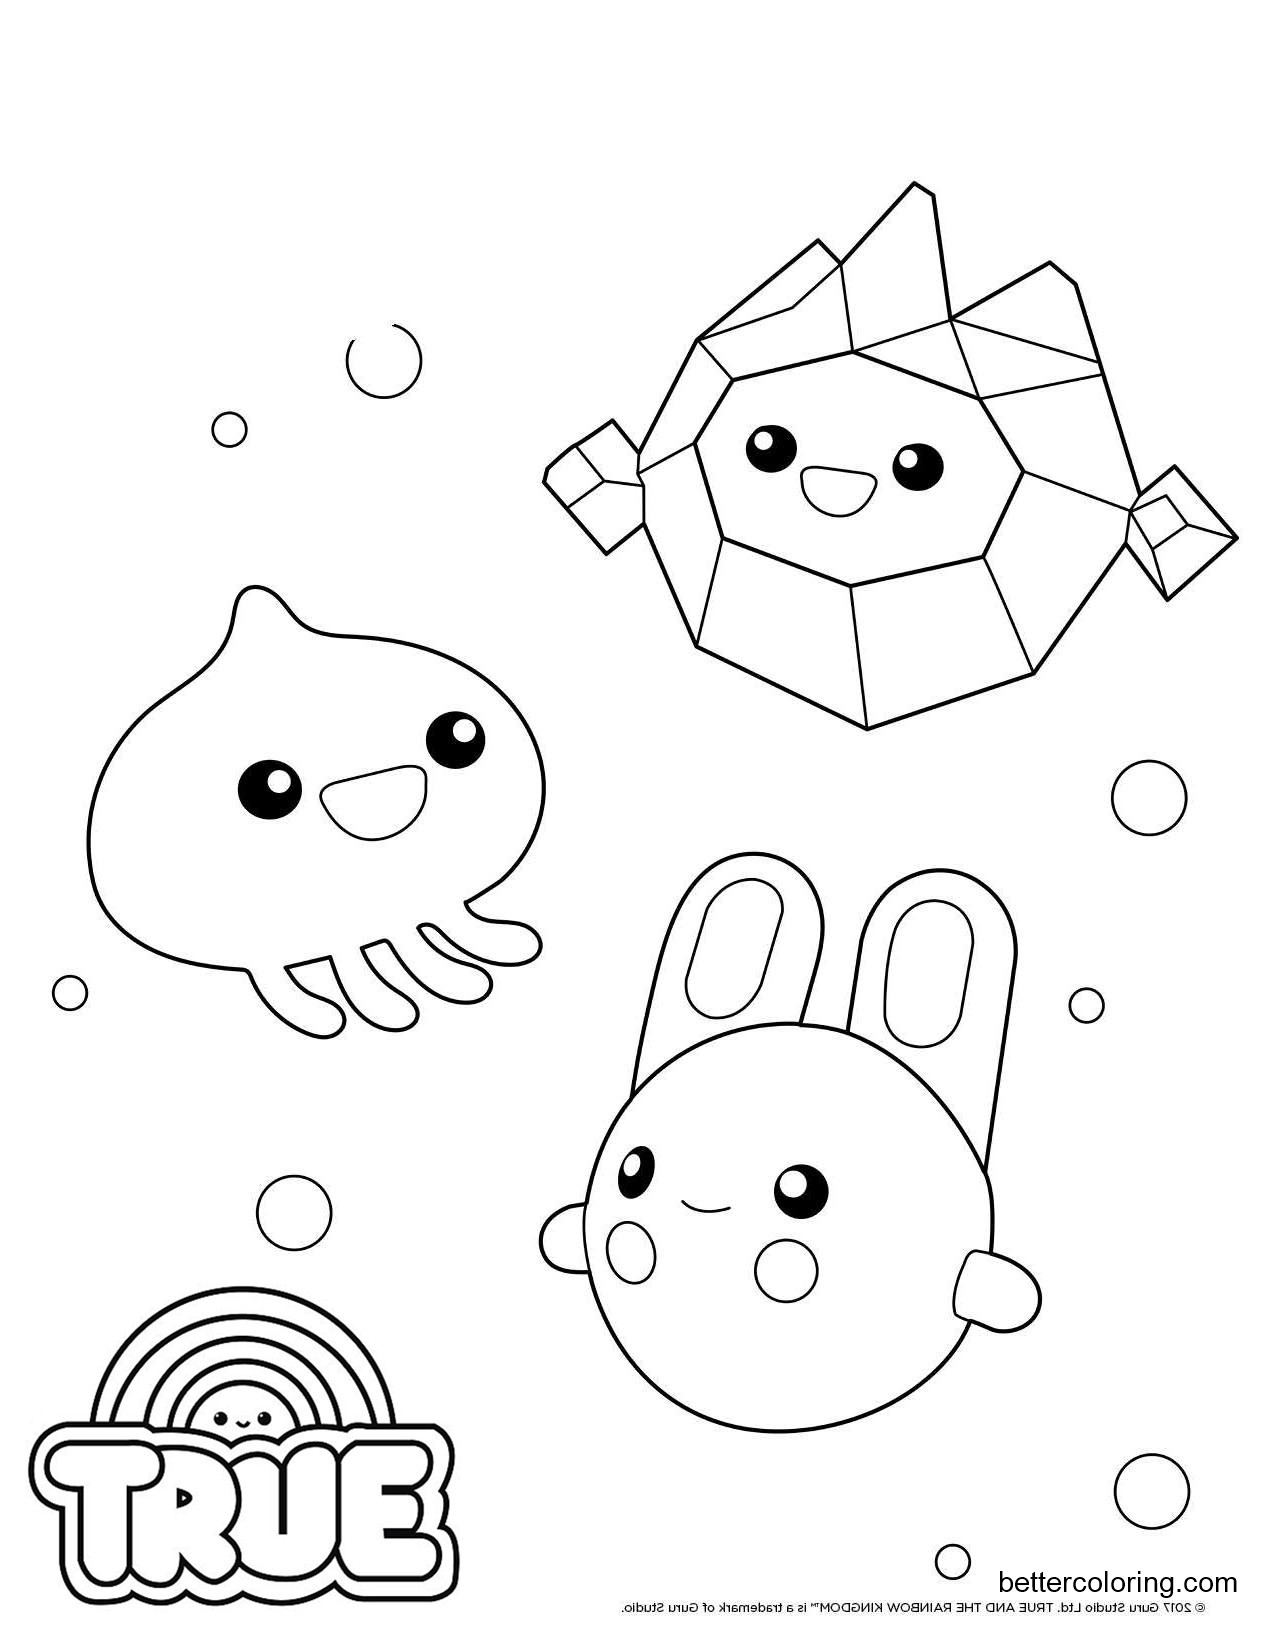 rainbow kingdom coloring pages zee from true and the rainbow kingdom coloring pages pages kingdom rainbow coloring